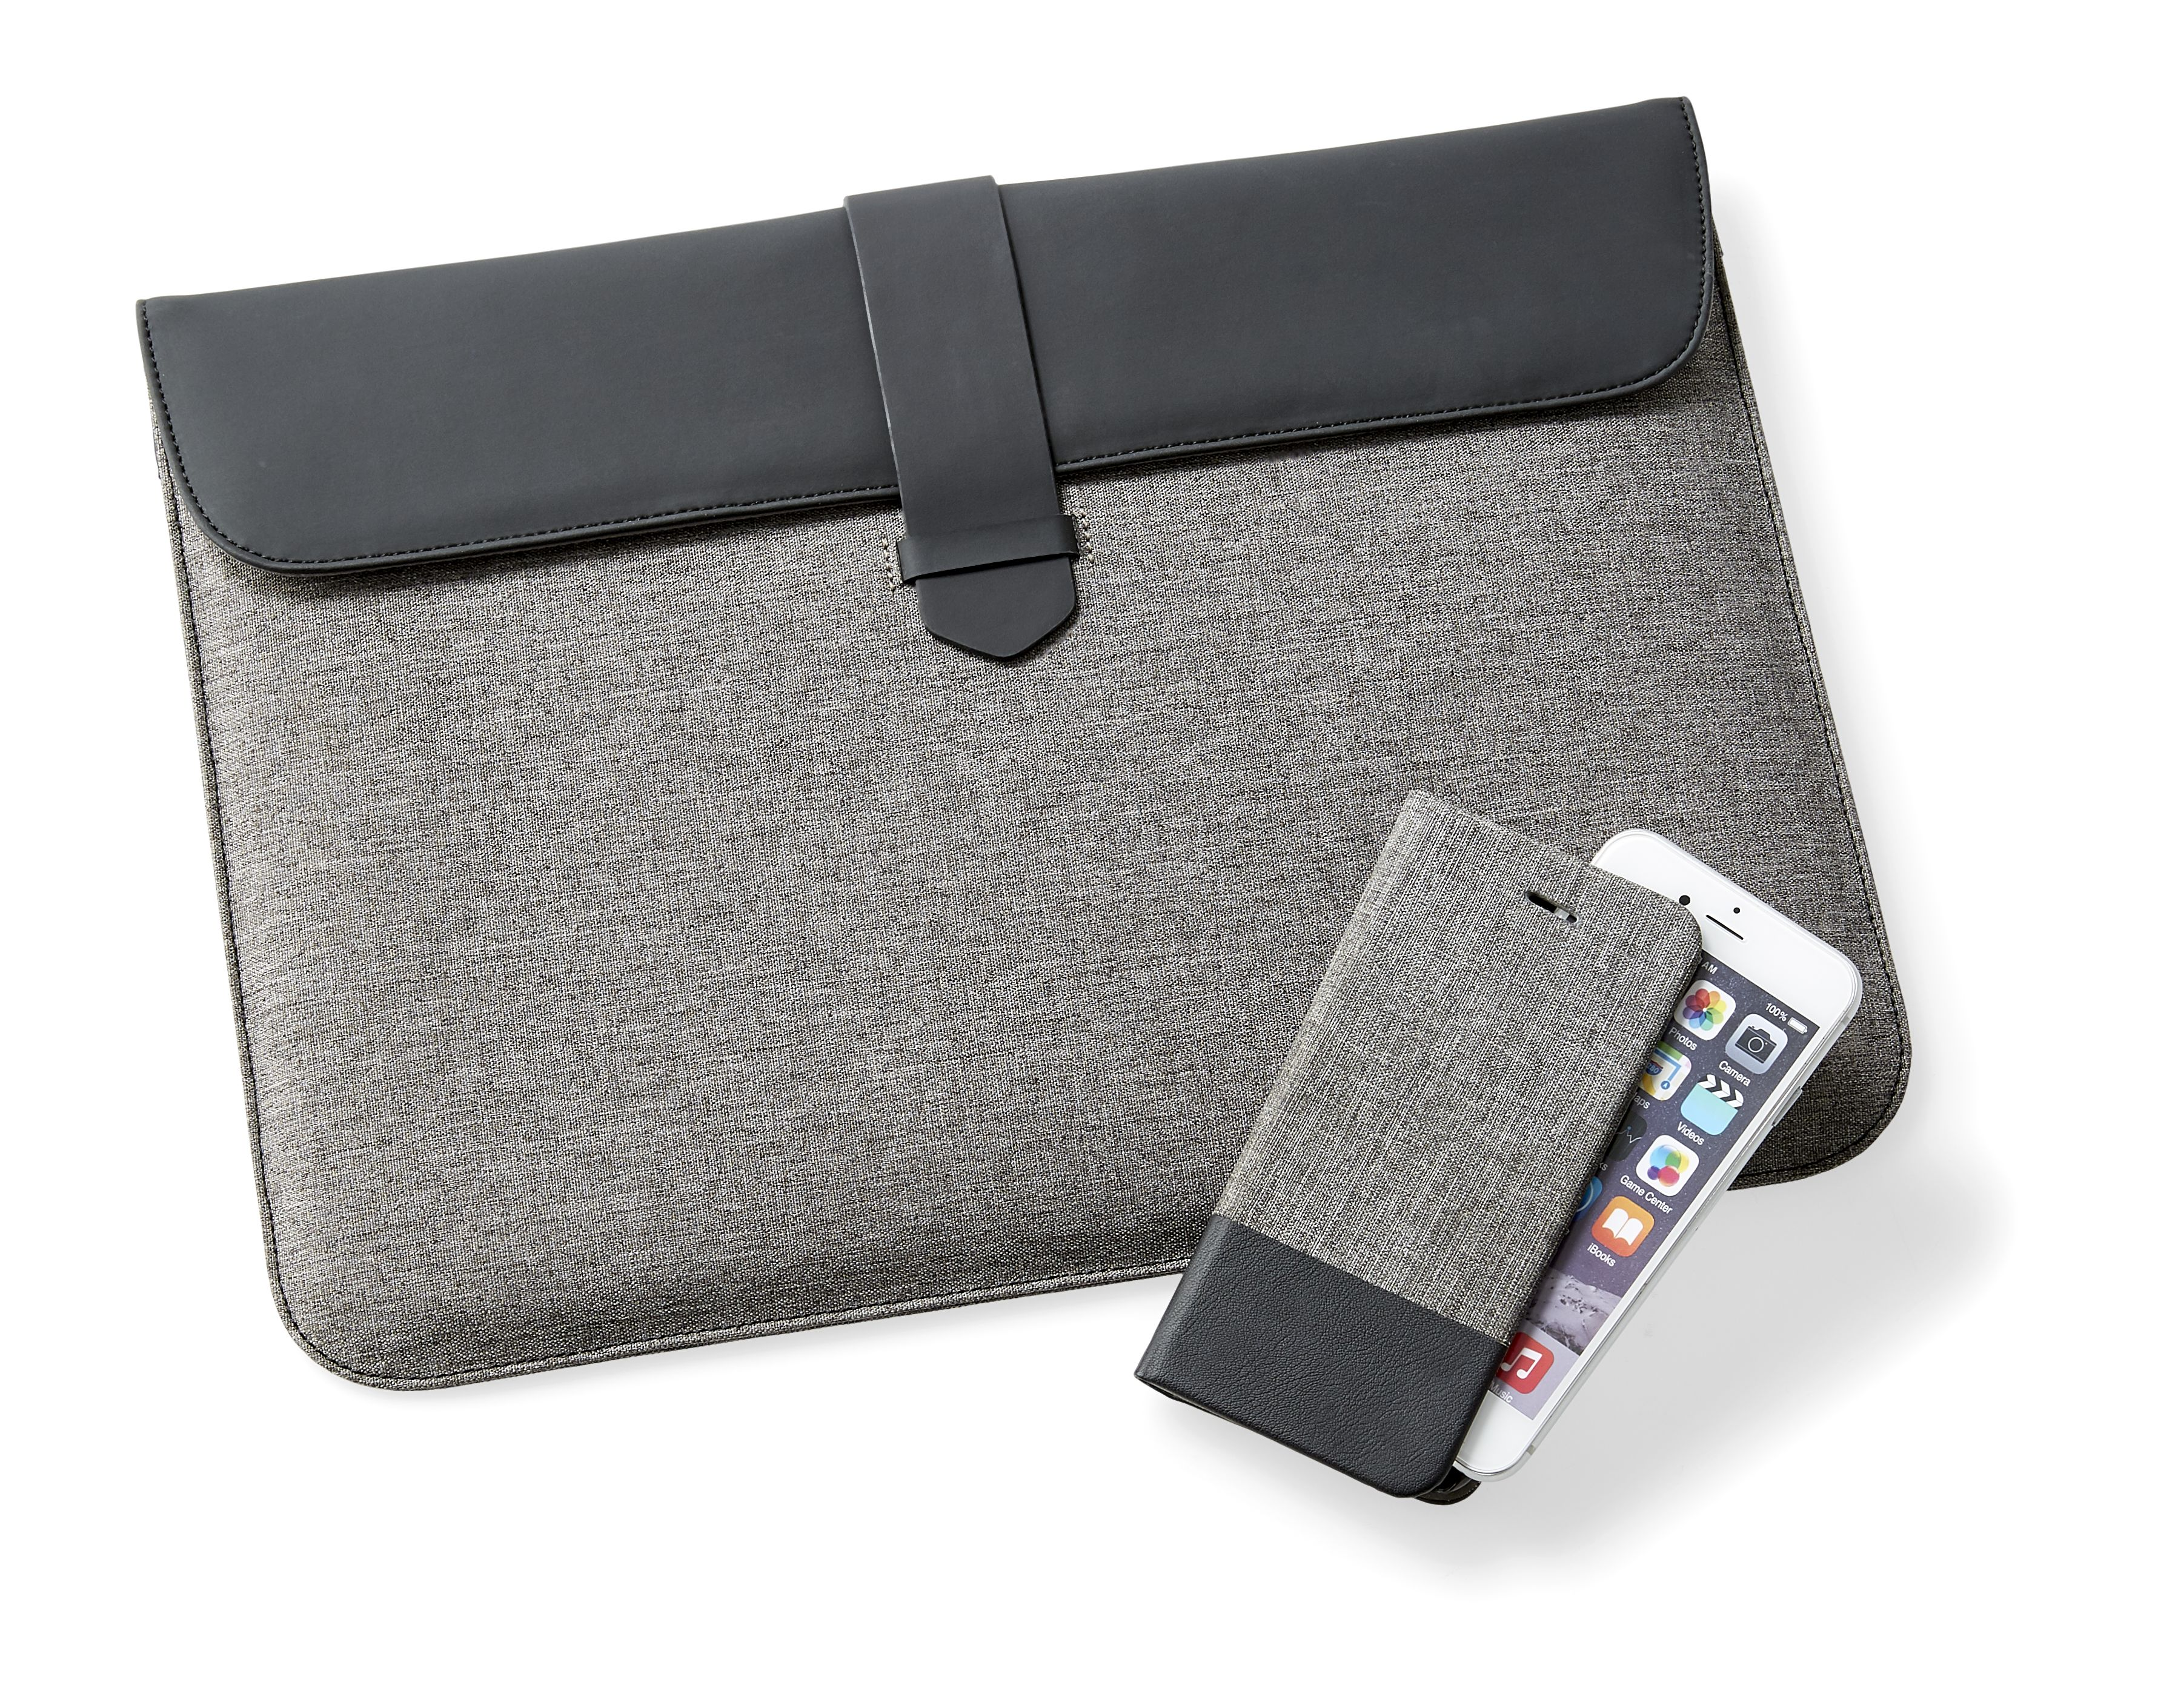 Kmart 13in Laptop Case, RRP$10, Kmart iPhone 6 Flip Case, RRP$7